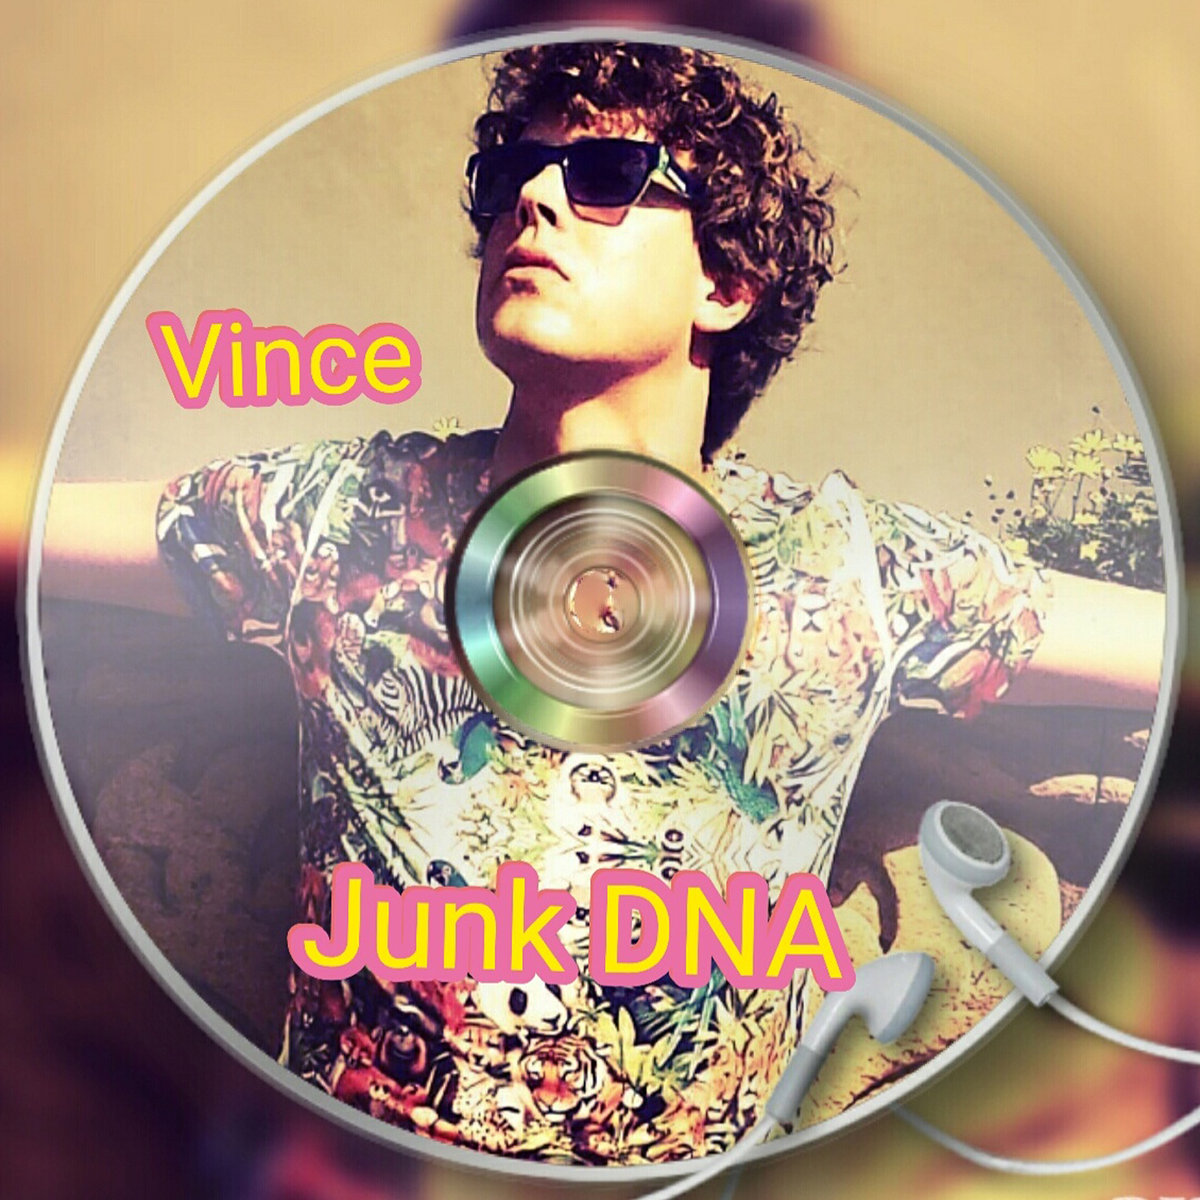 Vince - Before the Fall @ 'Junk DNA' album (pop, pop punk)